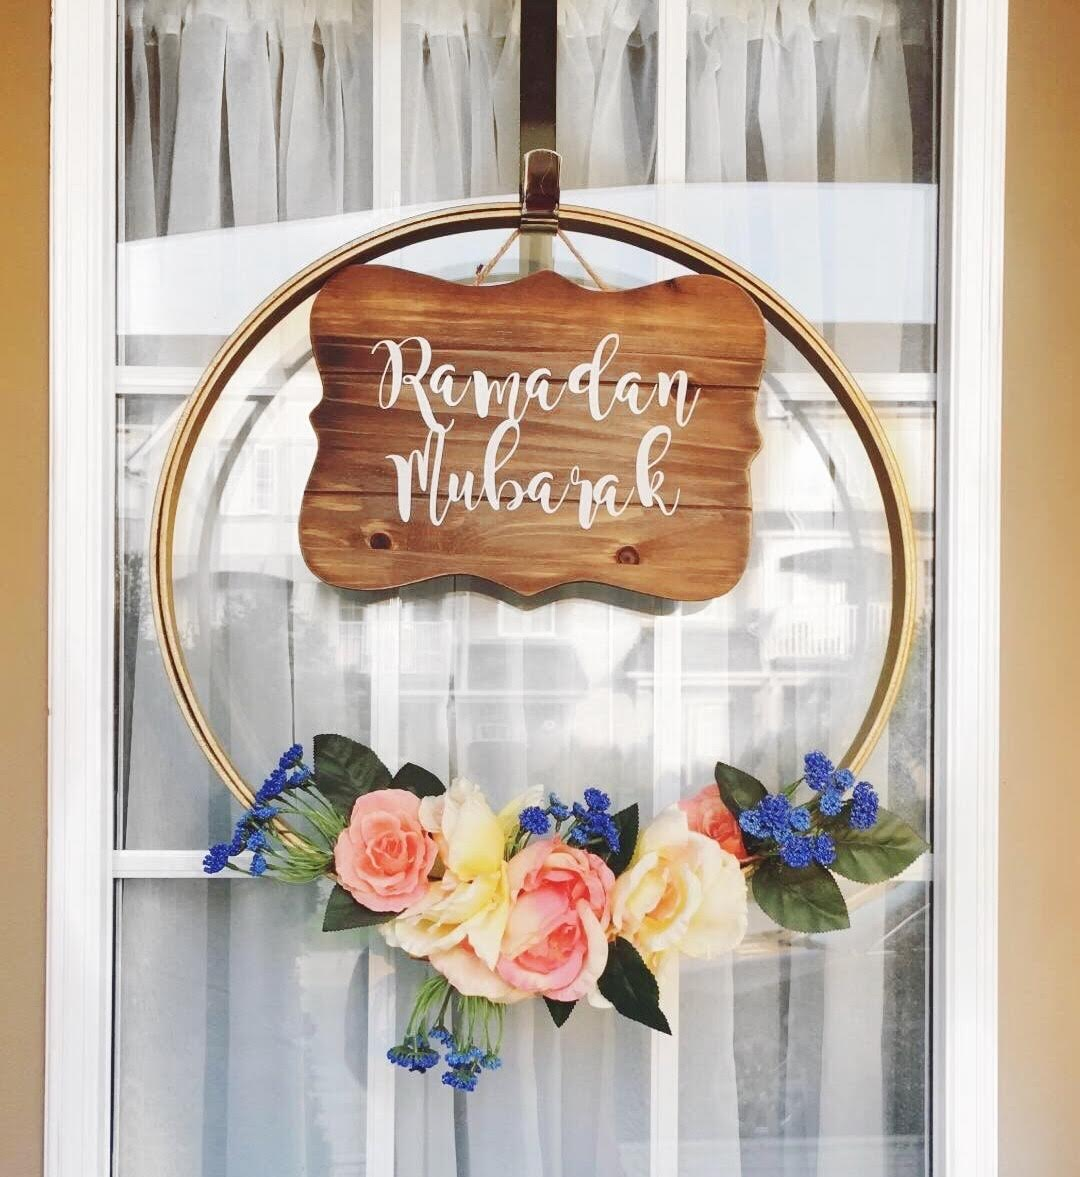 Ramadan-wreath-decor-idea